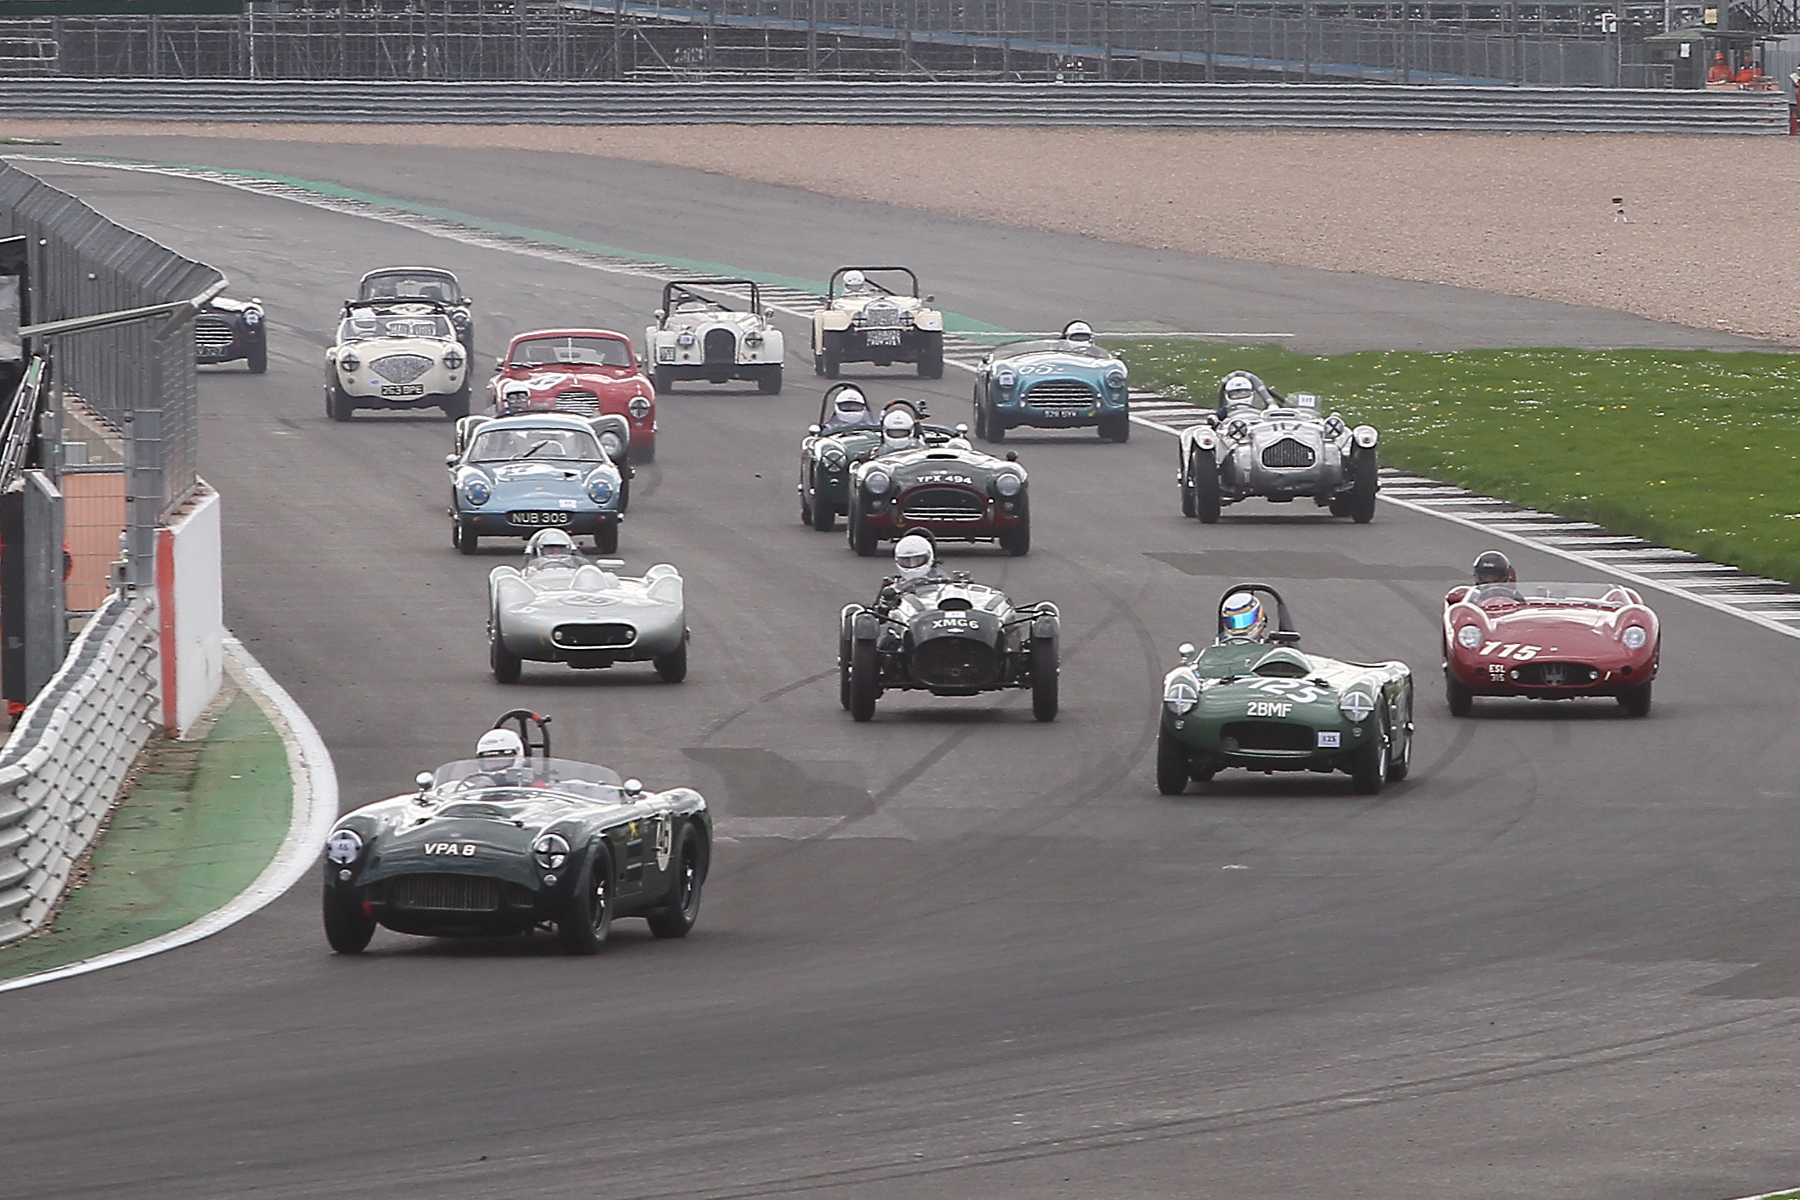 Great start by Martin Hunt took his HWM into the lead, whilst poleman, Richard Wilson, in his Maserati 250S has made a poor one and dropped to 3rd behind Richard Woolmer in the  HWM Cadillac. Level with the Maserati is Martyn Corfield in the Frazer Nash LMR who has beaten Stephen Bond to the punch off the line. Please note the two white Morgans towards the back. Both Plus 4 models, Mark Shears Flat rad car is from 1952  whereas Alan House's is  from 1959.                                                                                                          Photo - Mick Walker